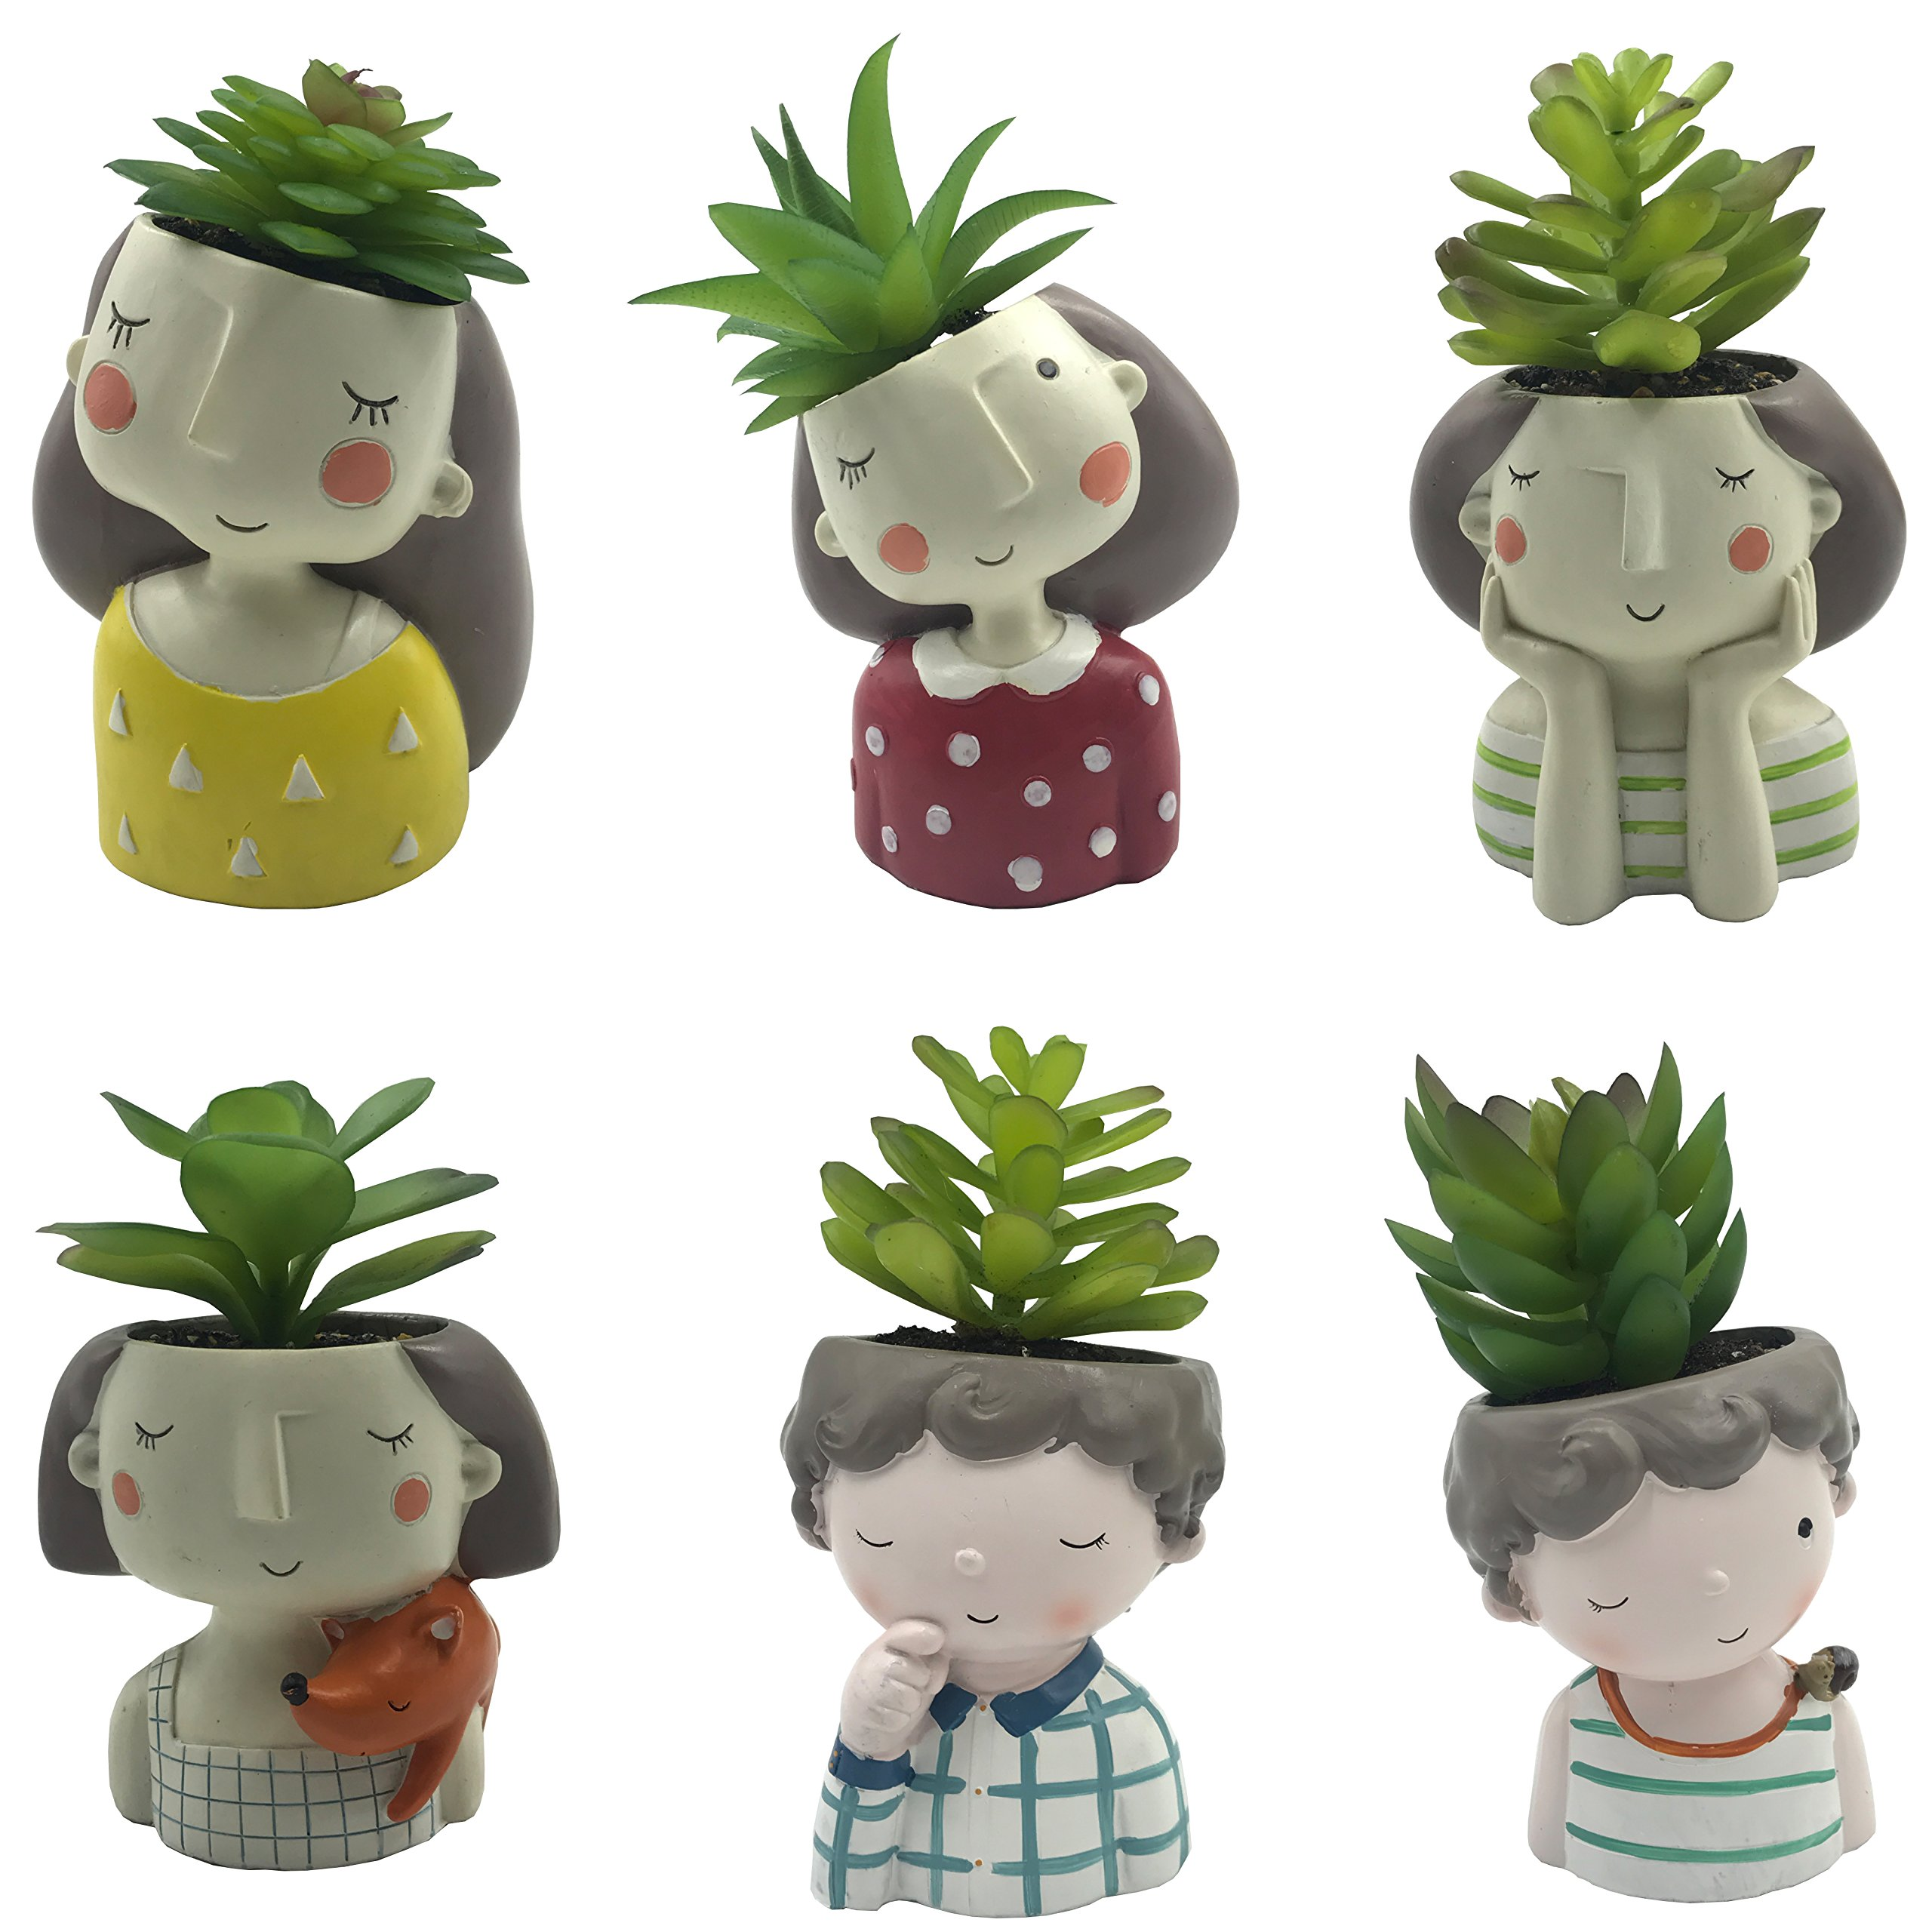 6 PCS Set Cute Flower Girls and Curly Hair Boys Shaped Succulent Cactus Flower Pot/Plant Pots/Planter/Container for Home Garden Office Desktop Decoration (Plants Not Included)